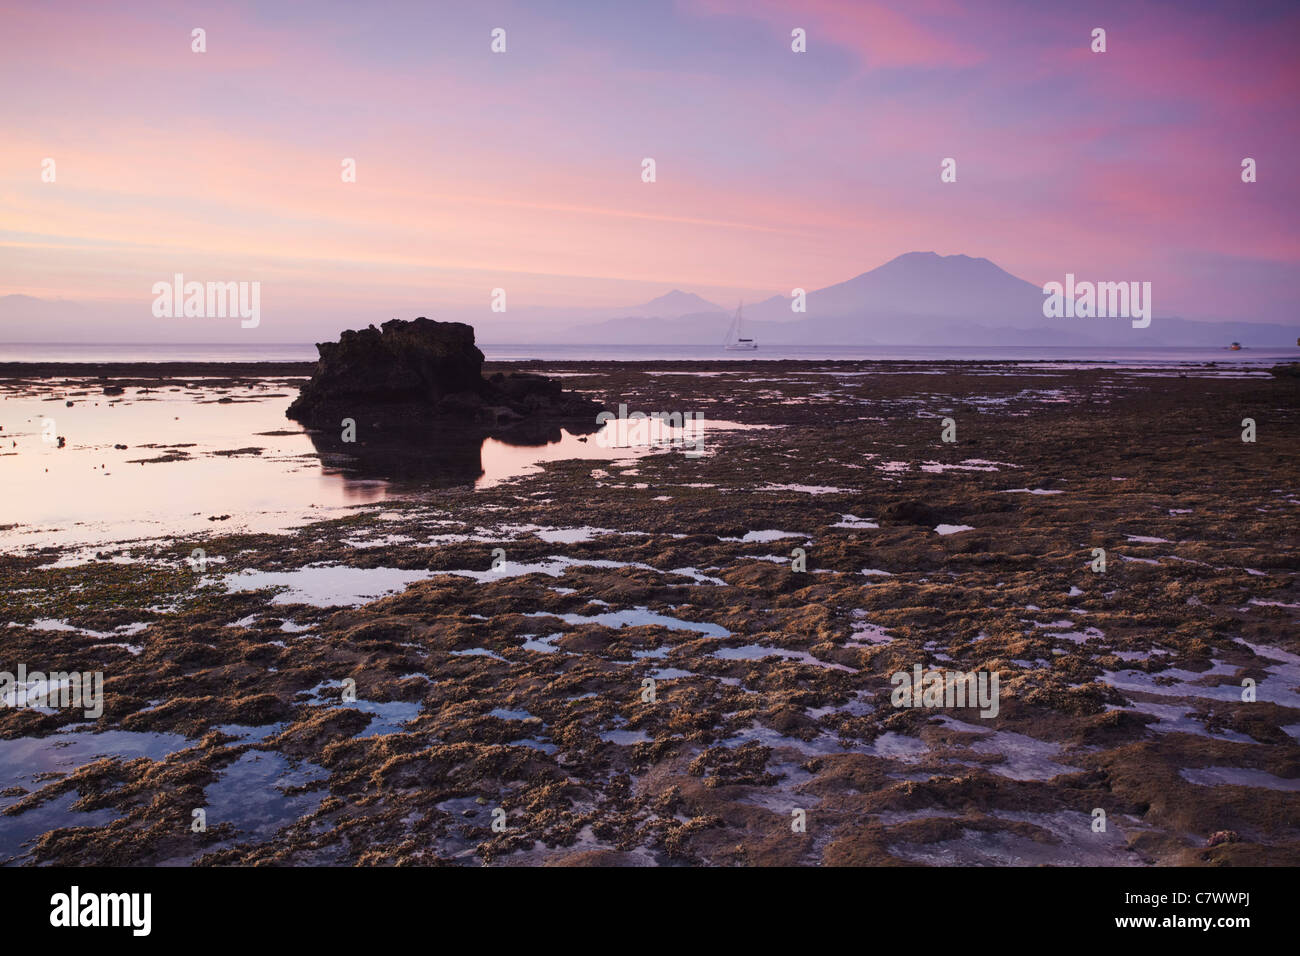 Mushroom Bay at sunset with Mount Agung in the background, Nusa Lembongan, Bali, Indonesia - Stock Image